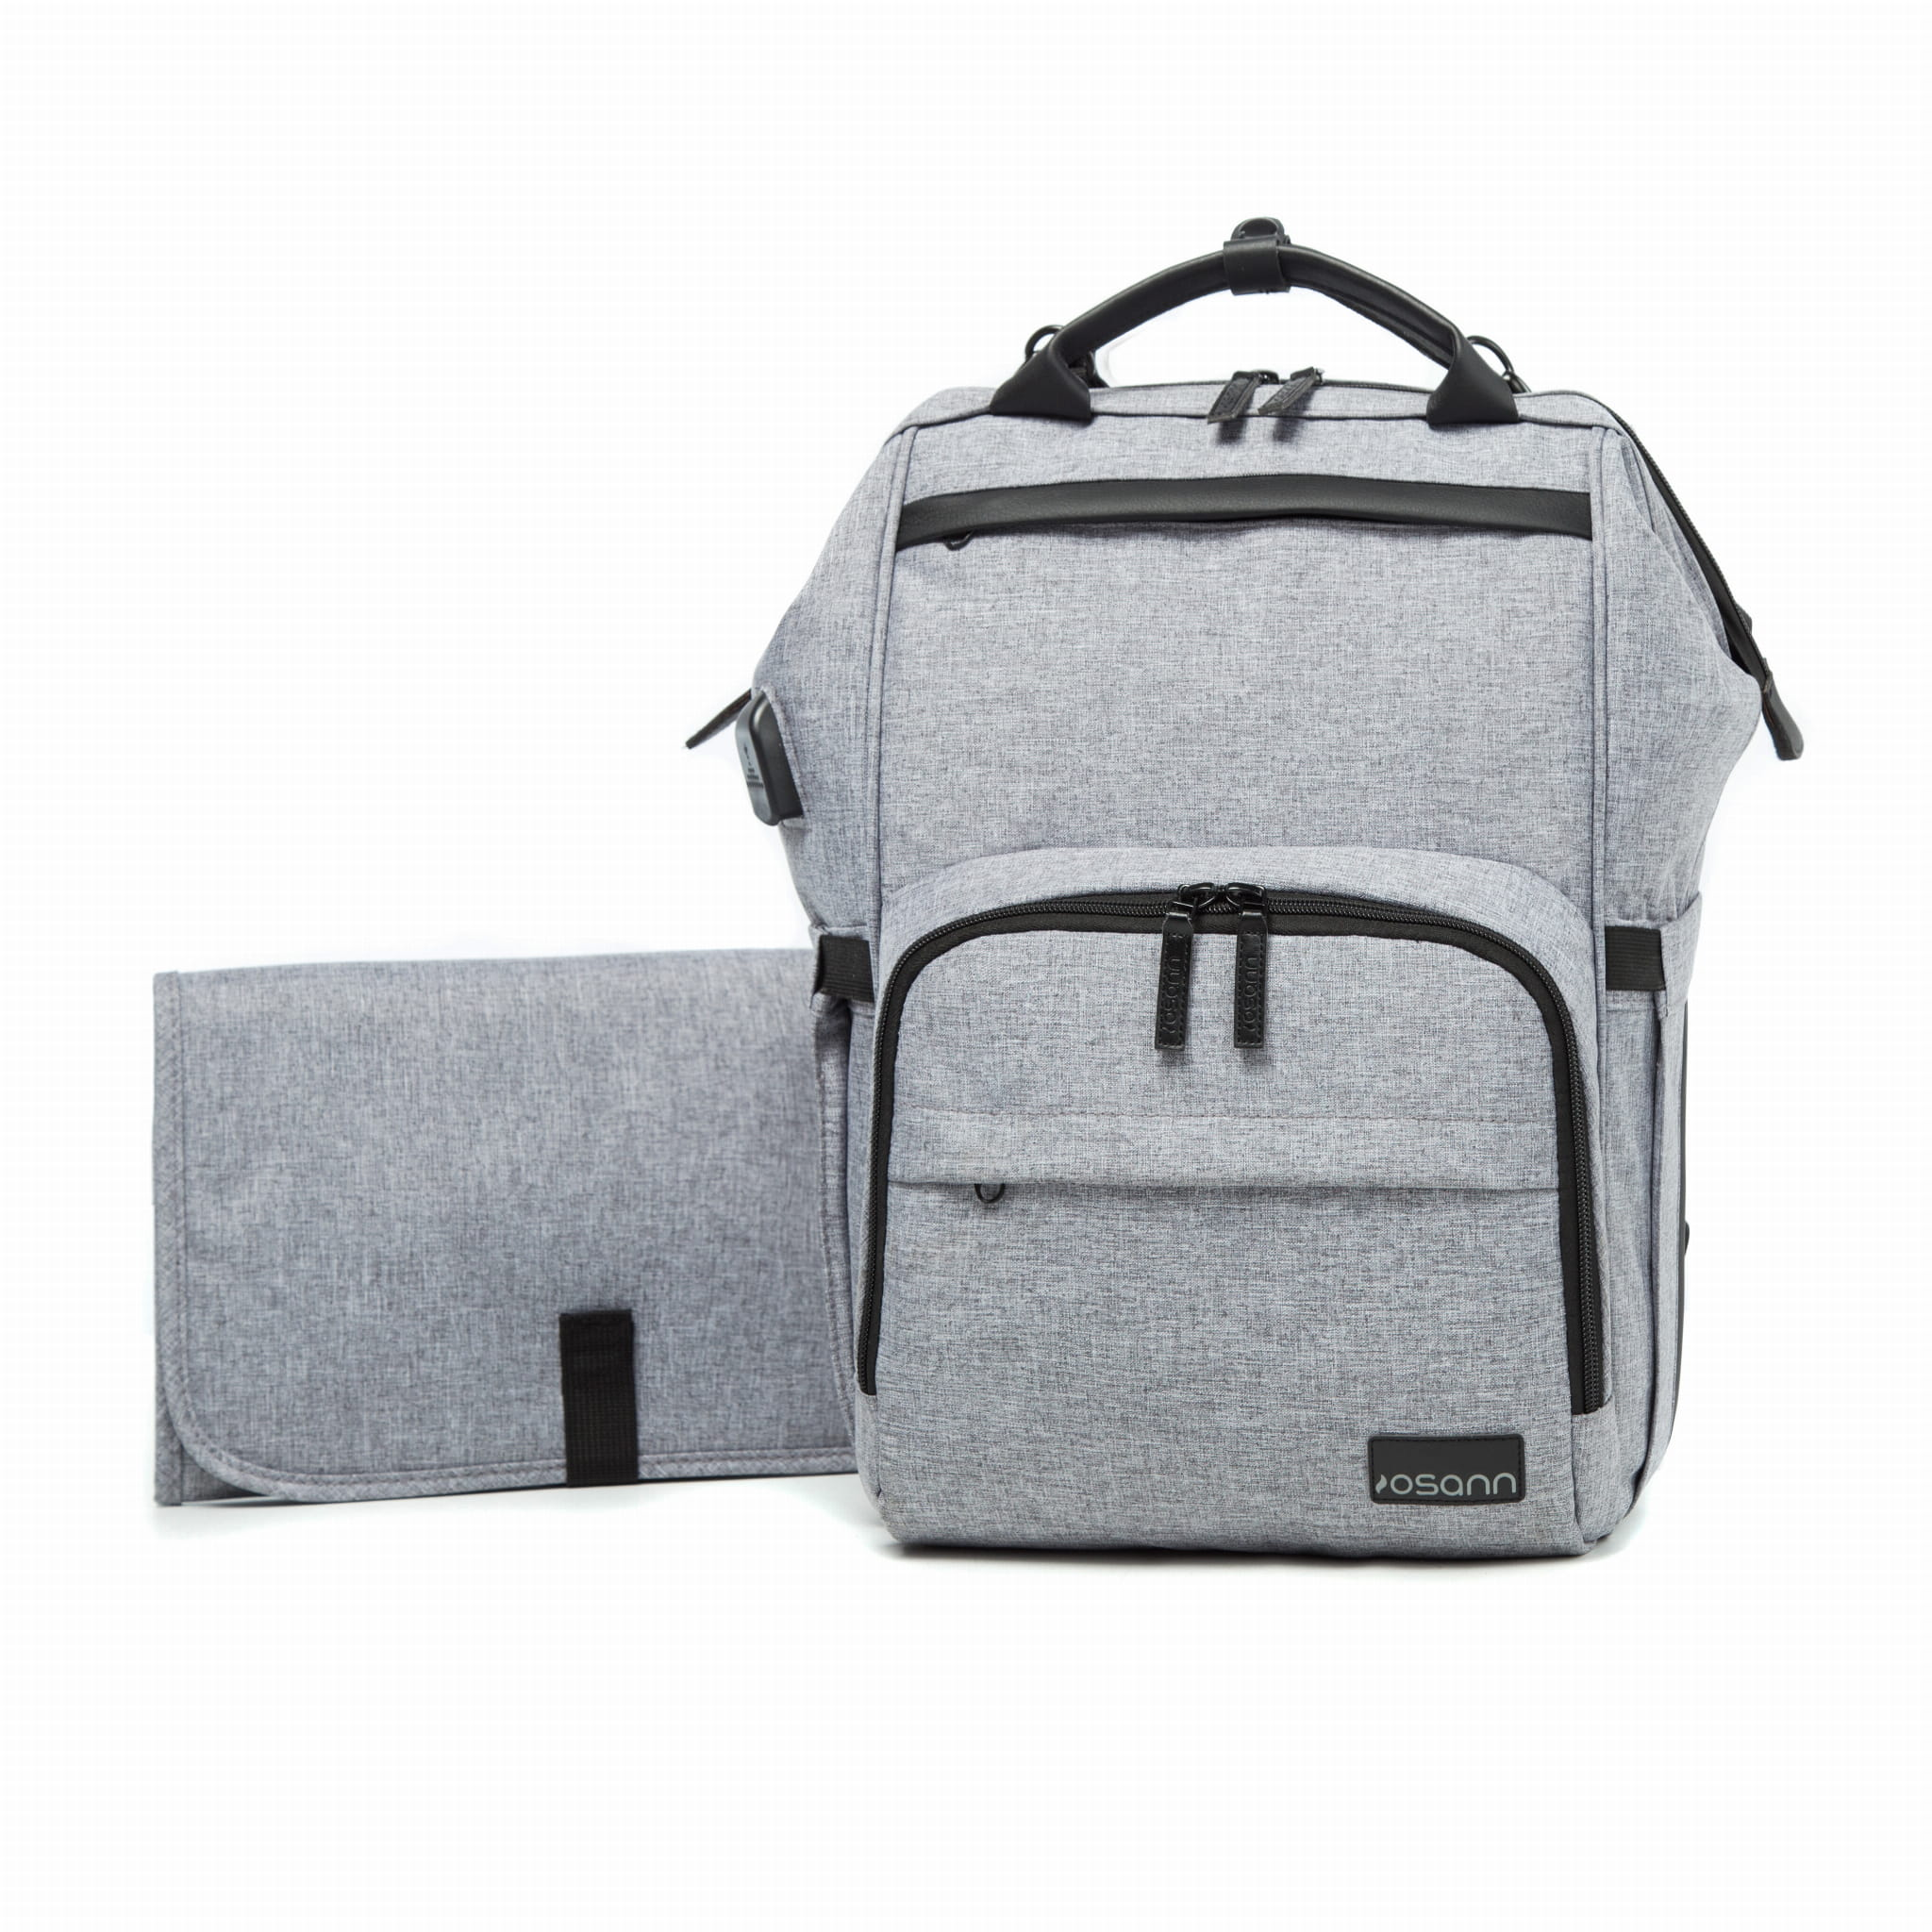 136-231-231 Osann Wickelrucksack BACKPACK - Grey Melange (1).jpg